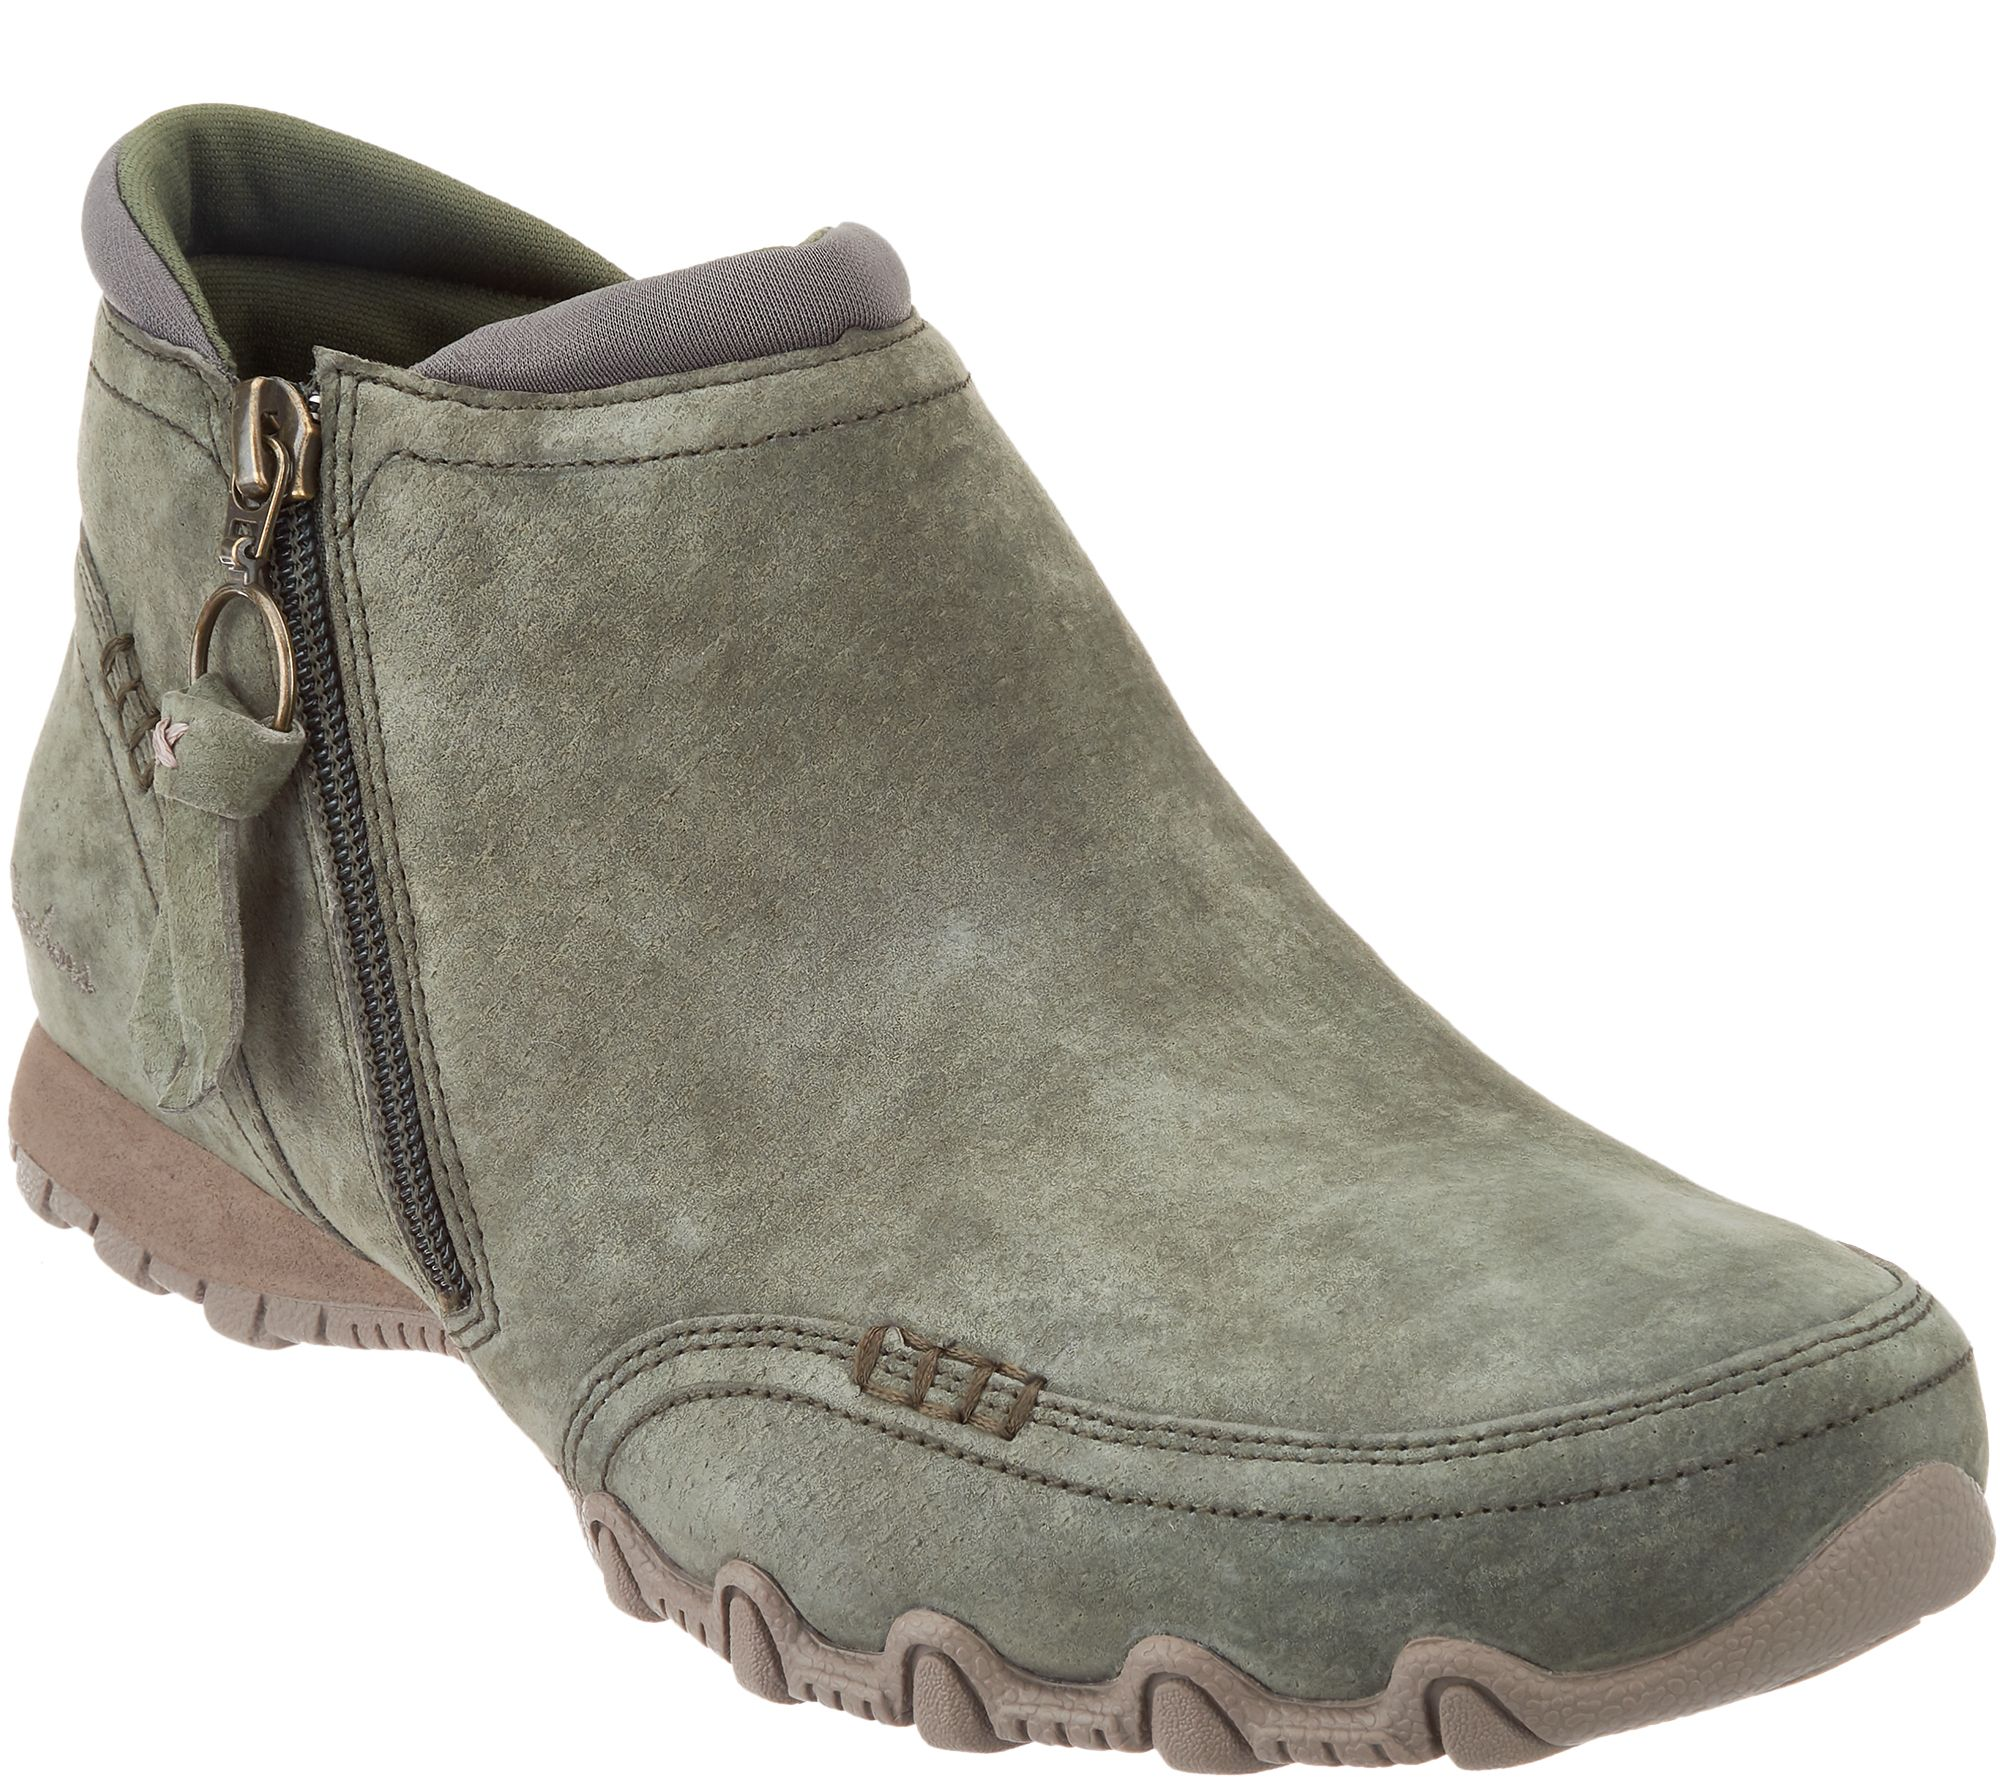 2415e1081 Skechers Relaxed Fit Suede Ankle Boots - Zappiest - Page 1 — QVC.com